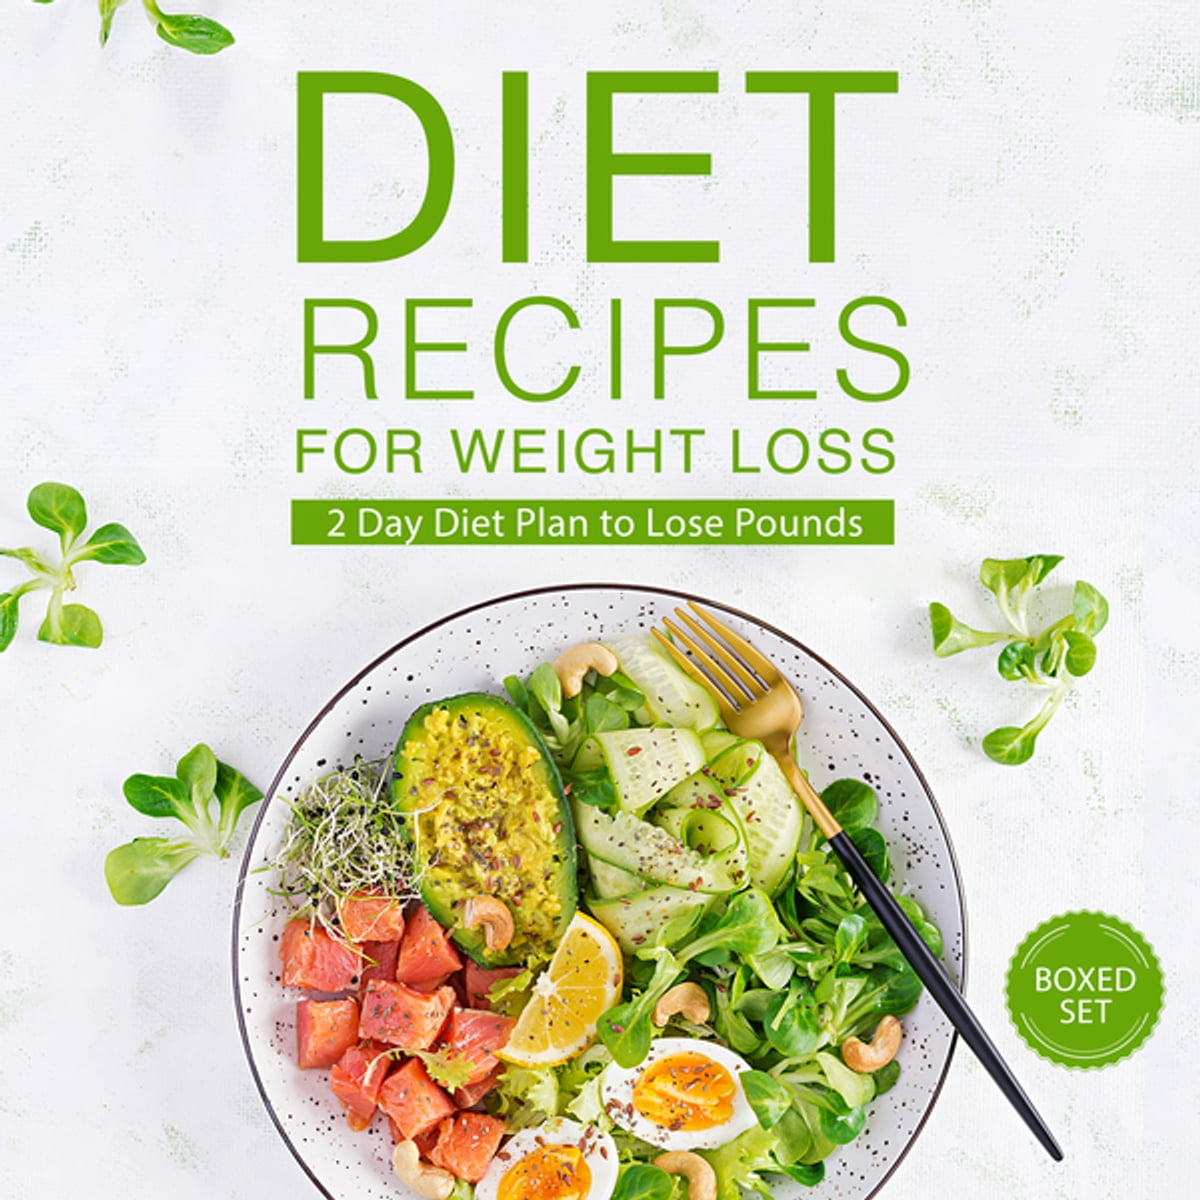 Diet Recipes For Weight Loss Boxed Set 2 Day Diet Plan To Lose Pounds Ebook By Speedy Publishing 9781633835566 Rakuten Kobo United States